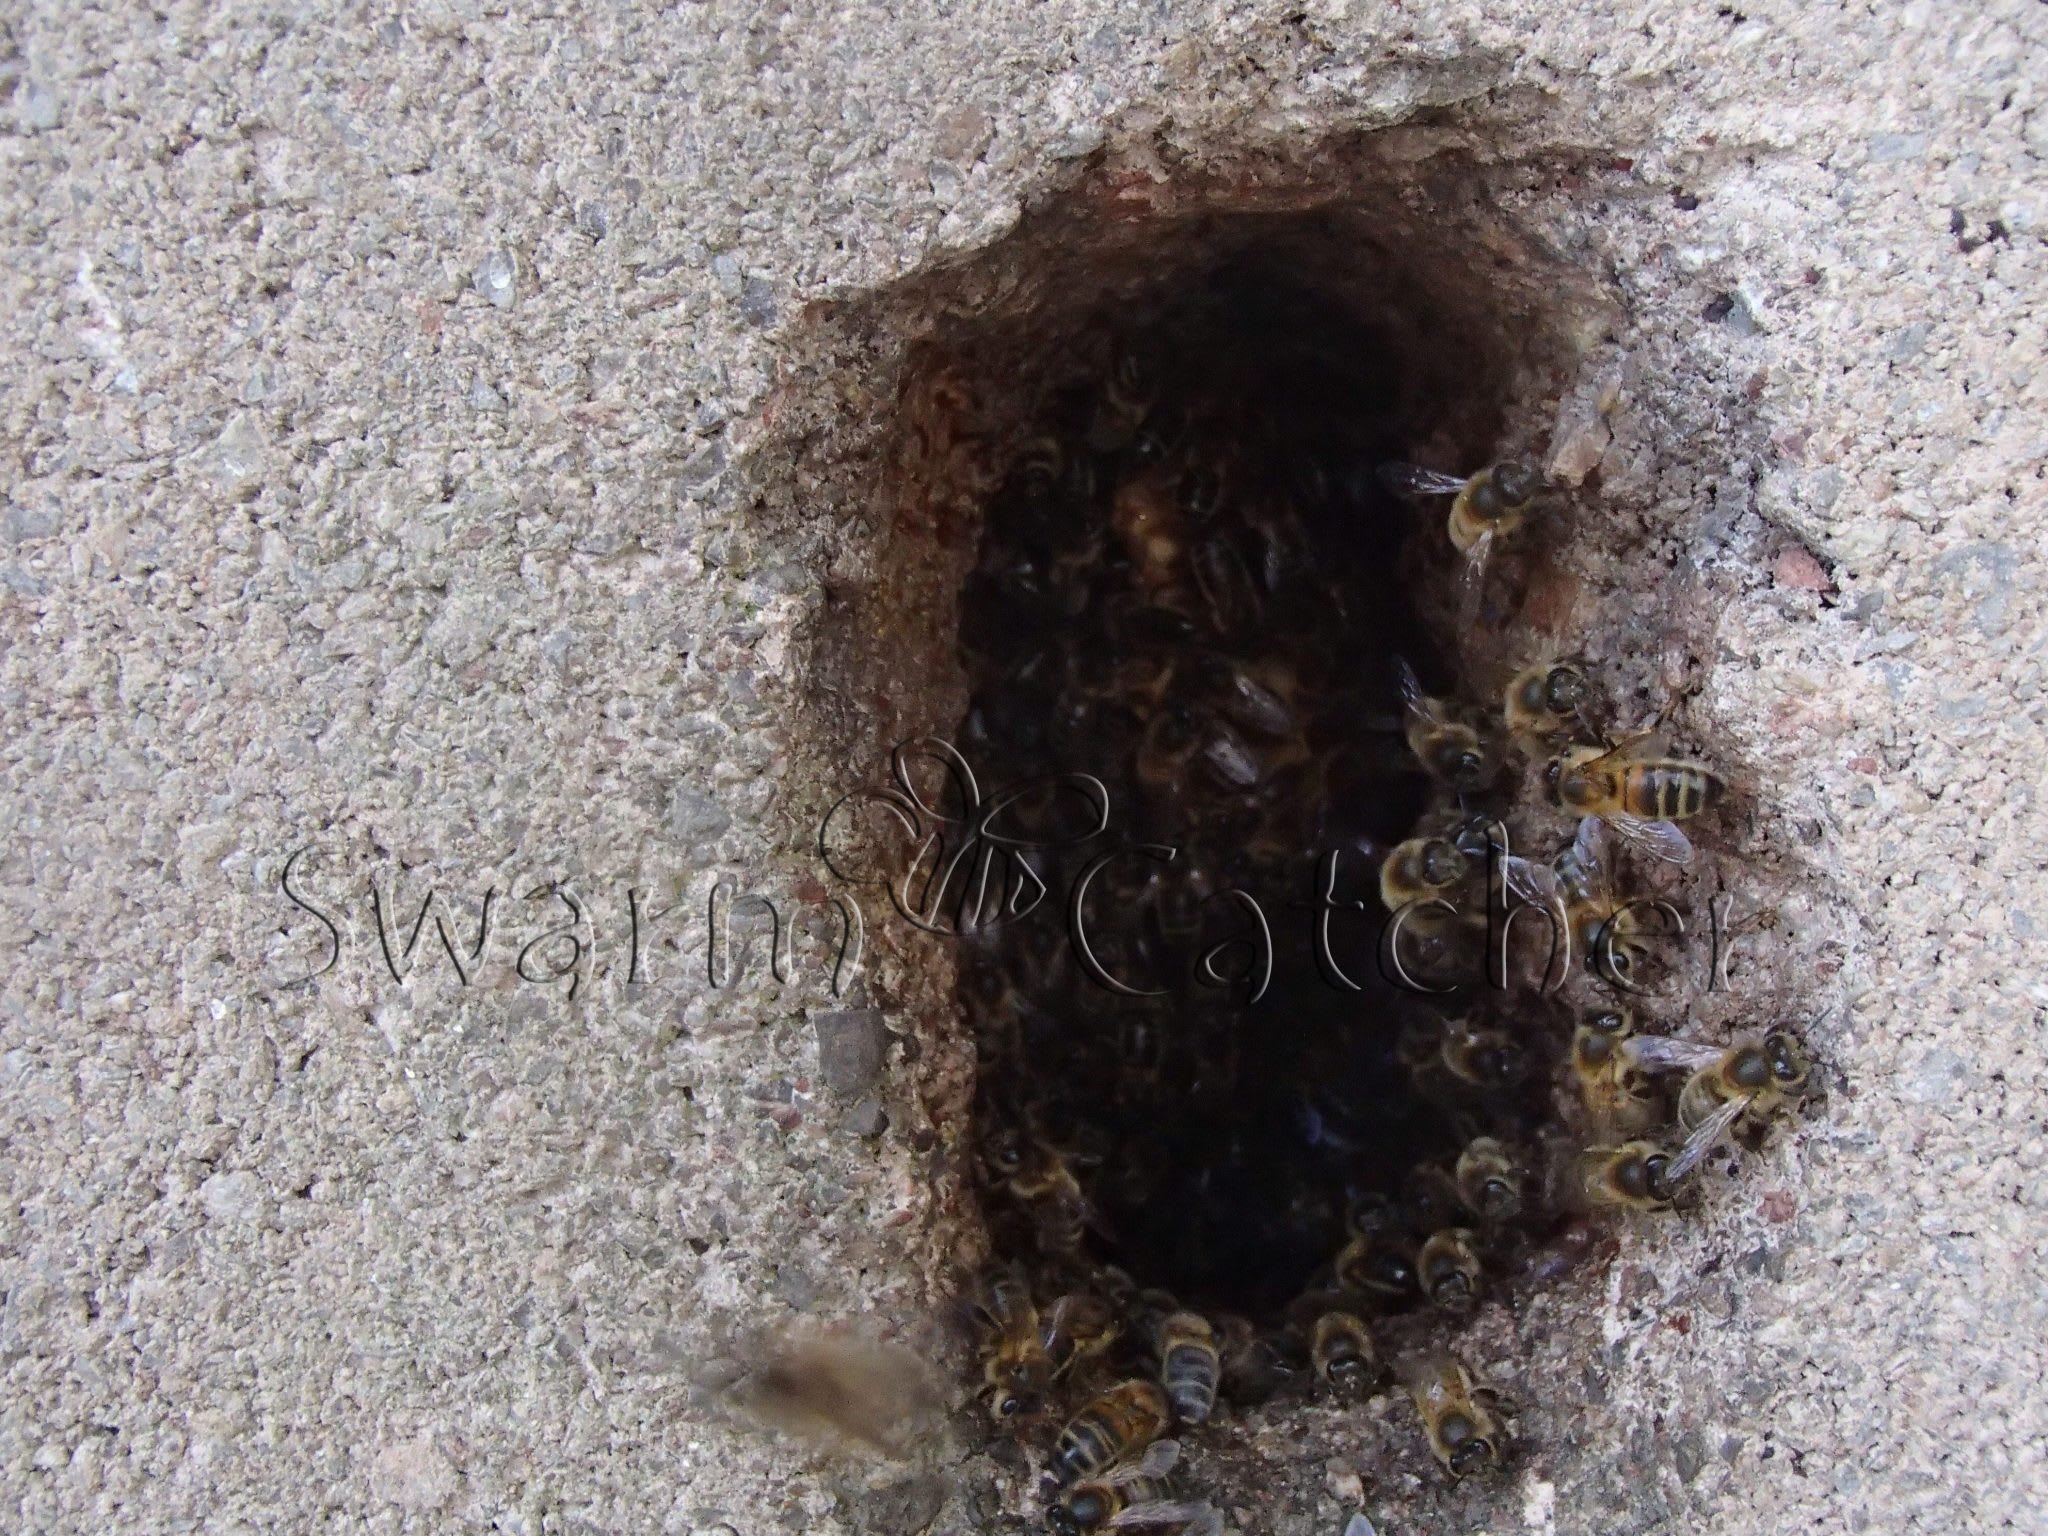 Honey bees in walls - removed by knowledgeable experts